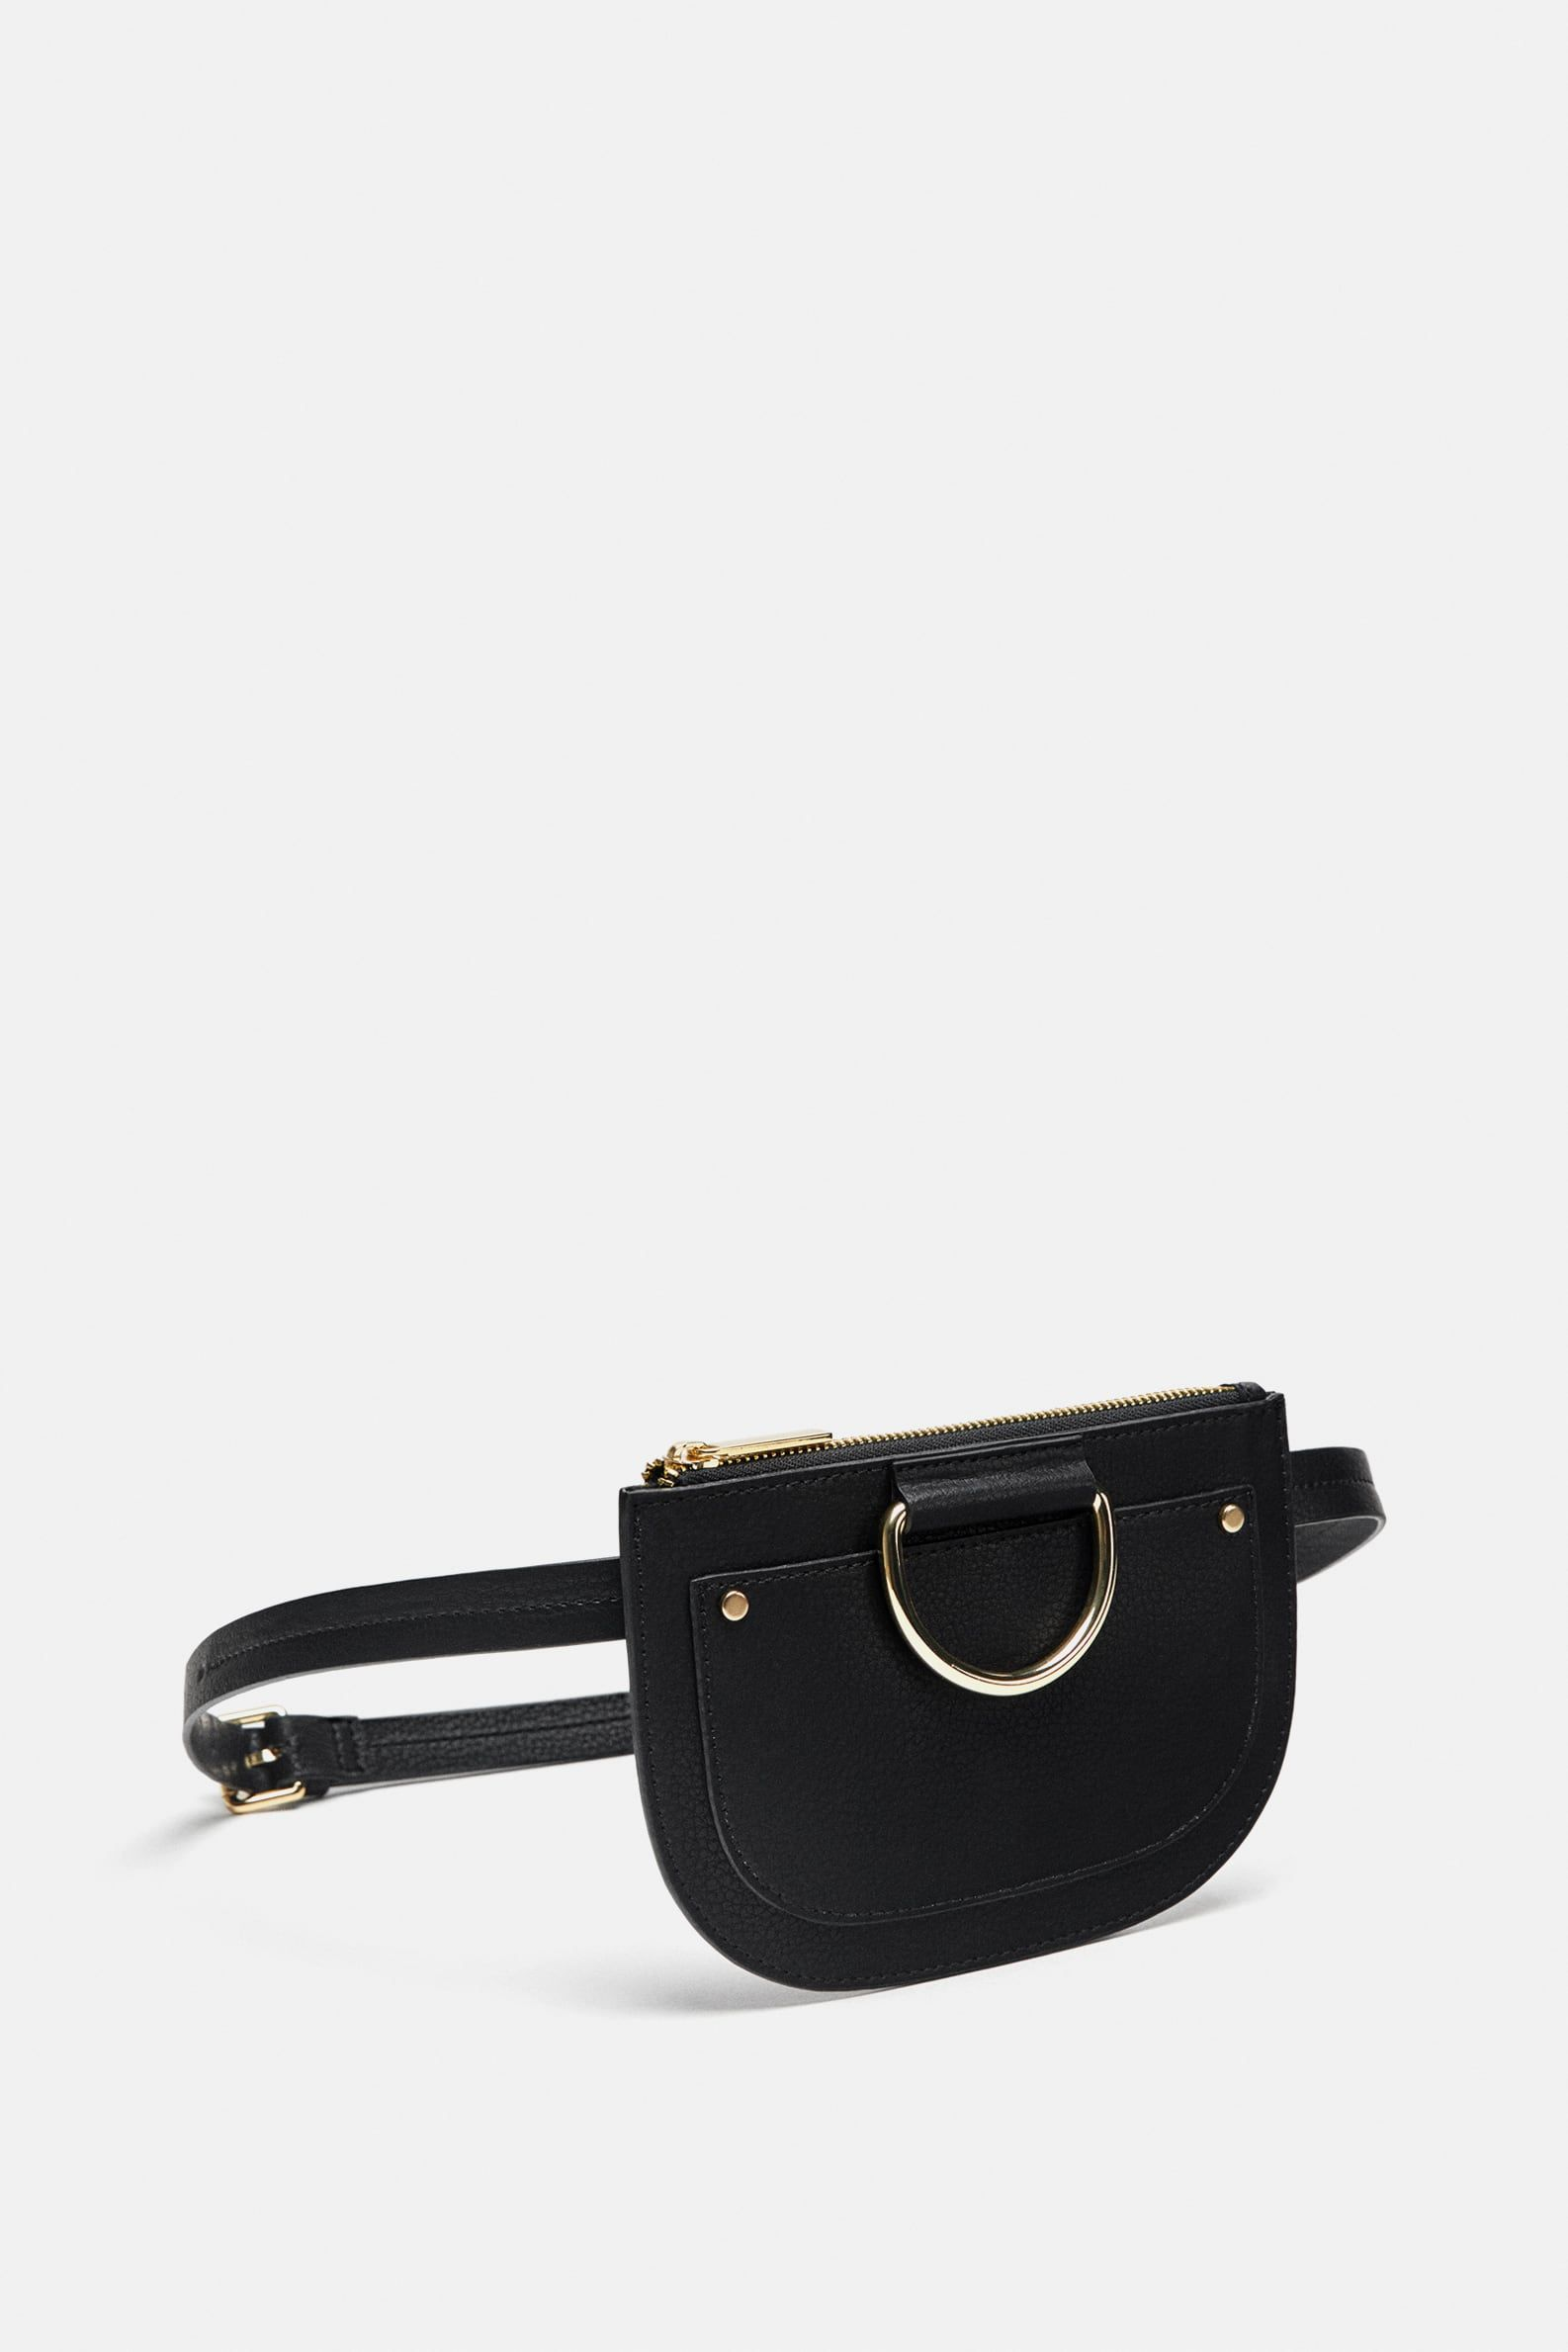 ccc1e5b0f614 Sustainable waist bag from ZARA